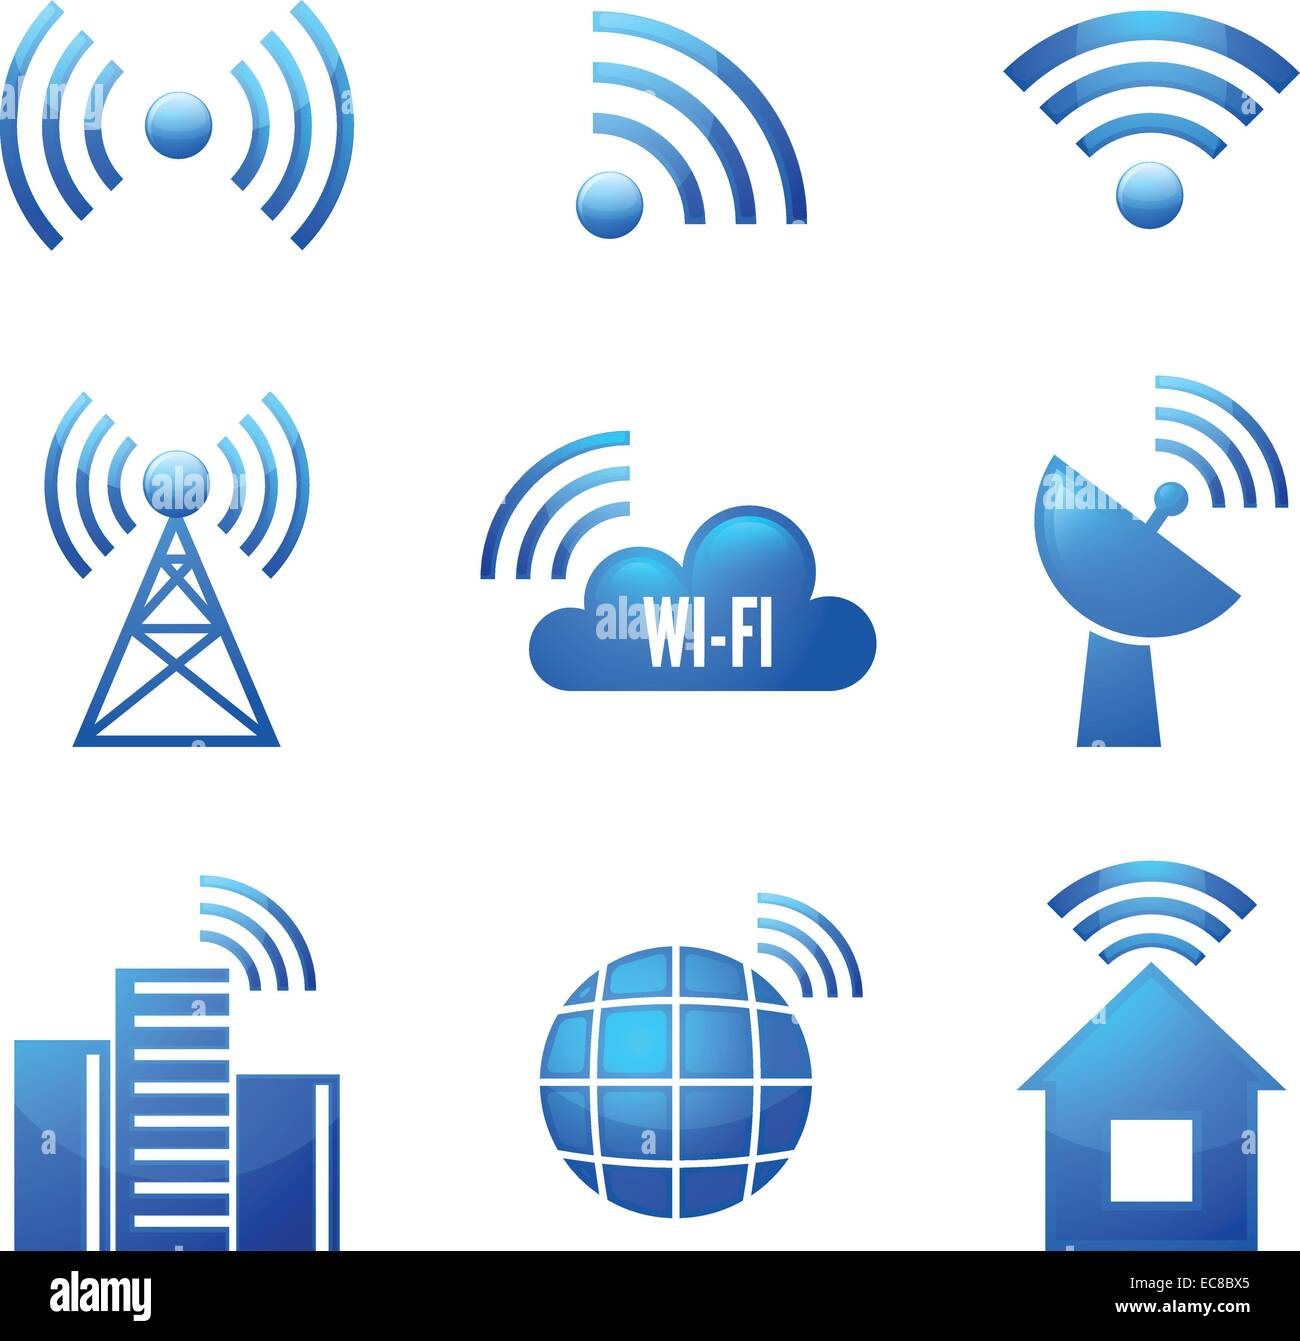 Electronic device wireless internet connection wifi symbols glossy electronic device wireless internet connection wifi symbols glossy icons or stickers set isolated vector illustration biocorpaavc